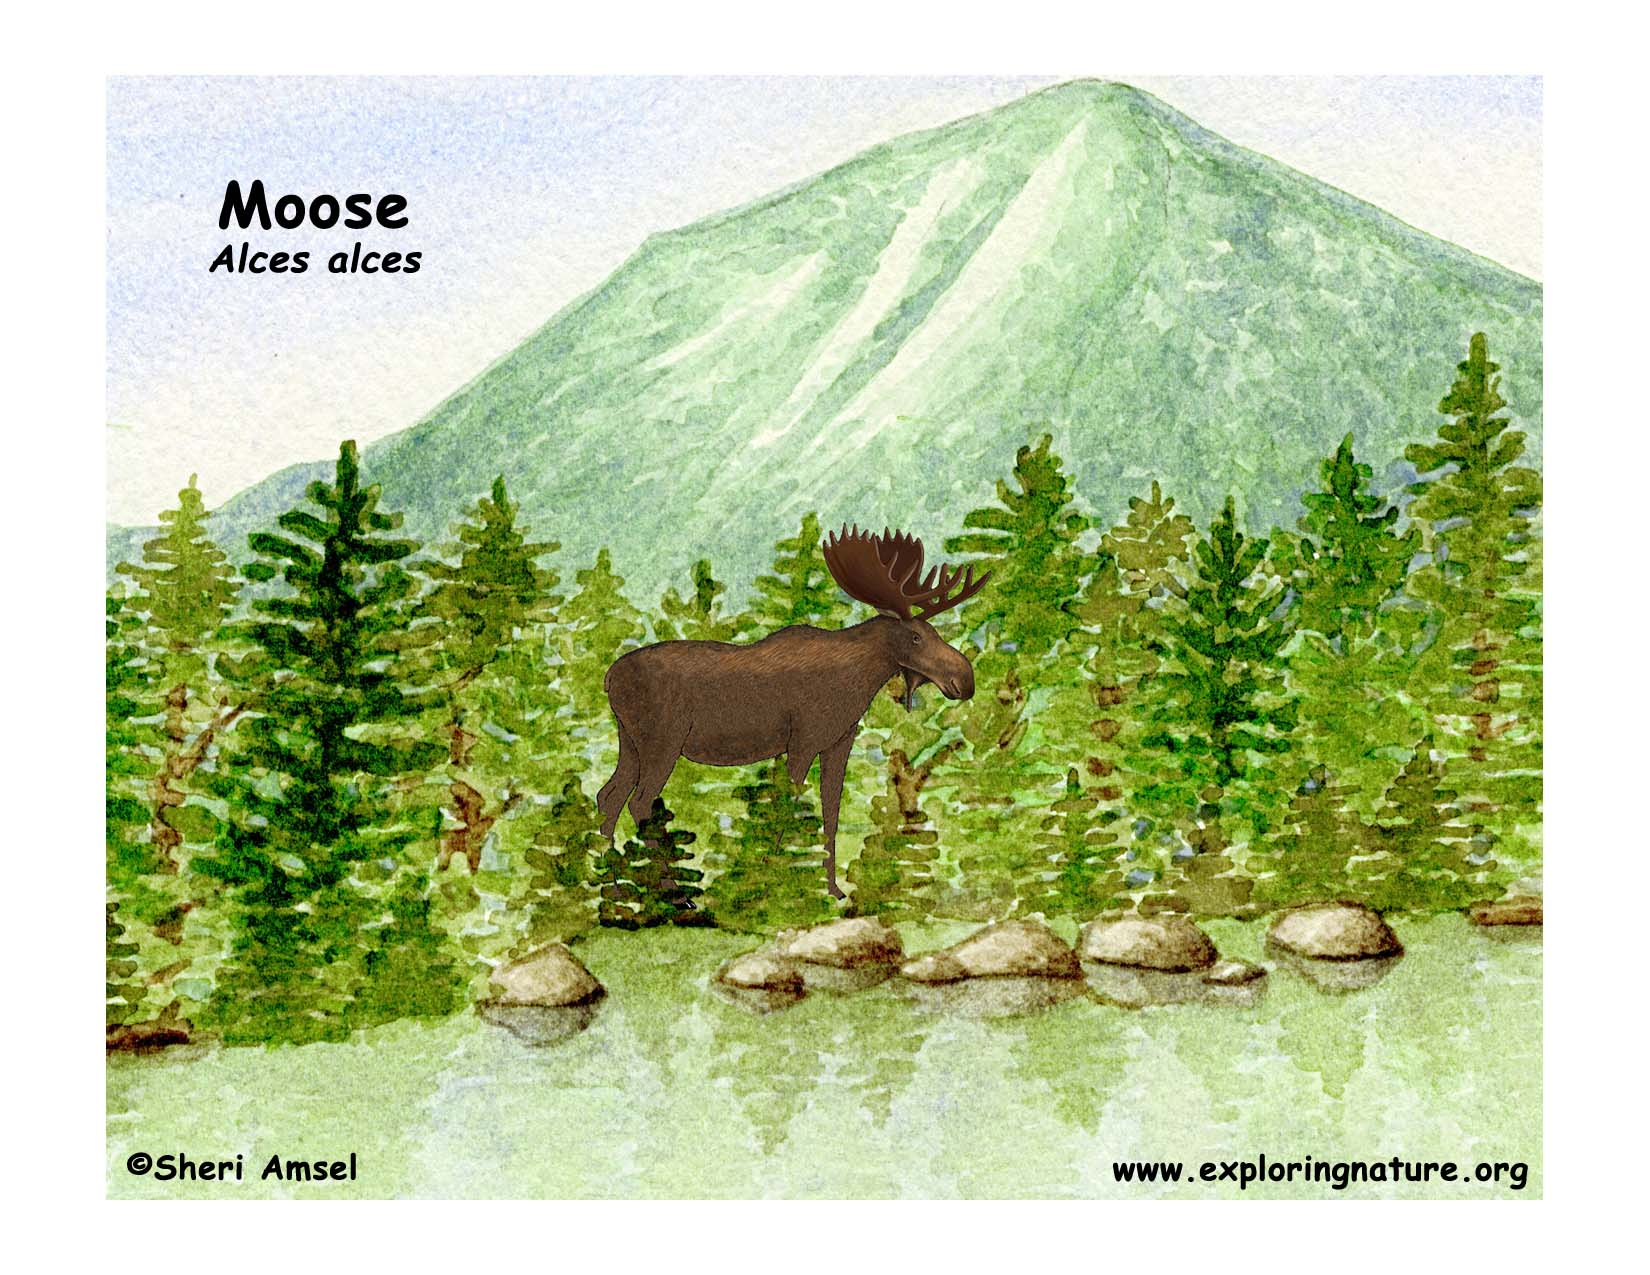 moose_inhabitat.jpg